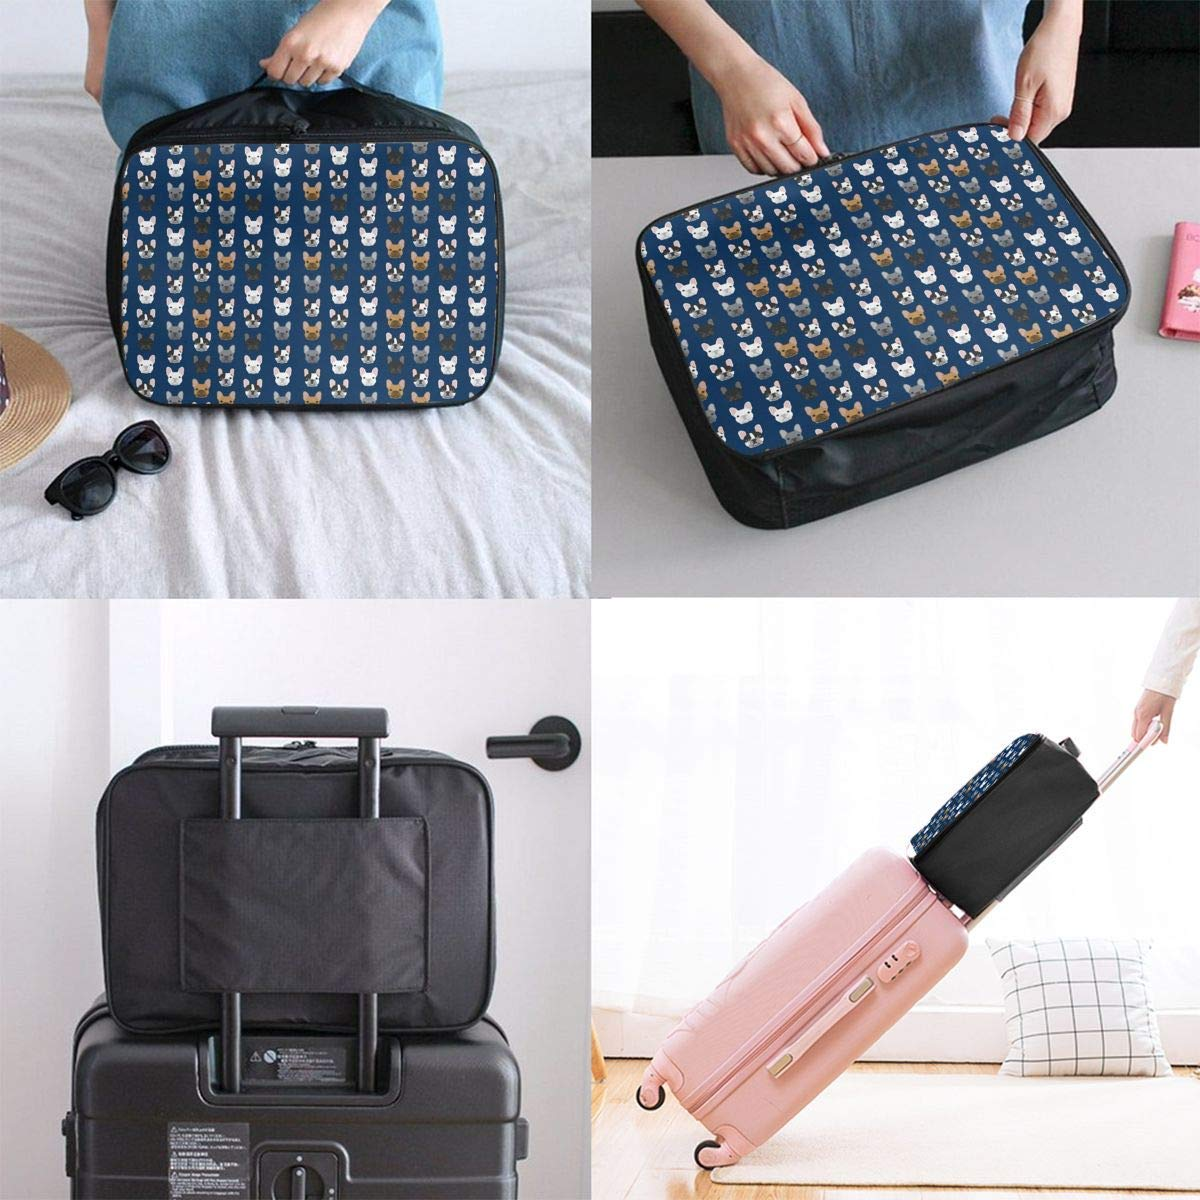 French Bulldog Navy Blue JTRVW Luggage Bags for Travel Travel Lightweight Waterproof Foldable Storage Carry Luggage Duffle Tote Bag